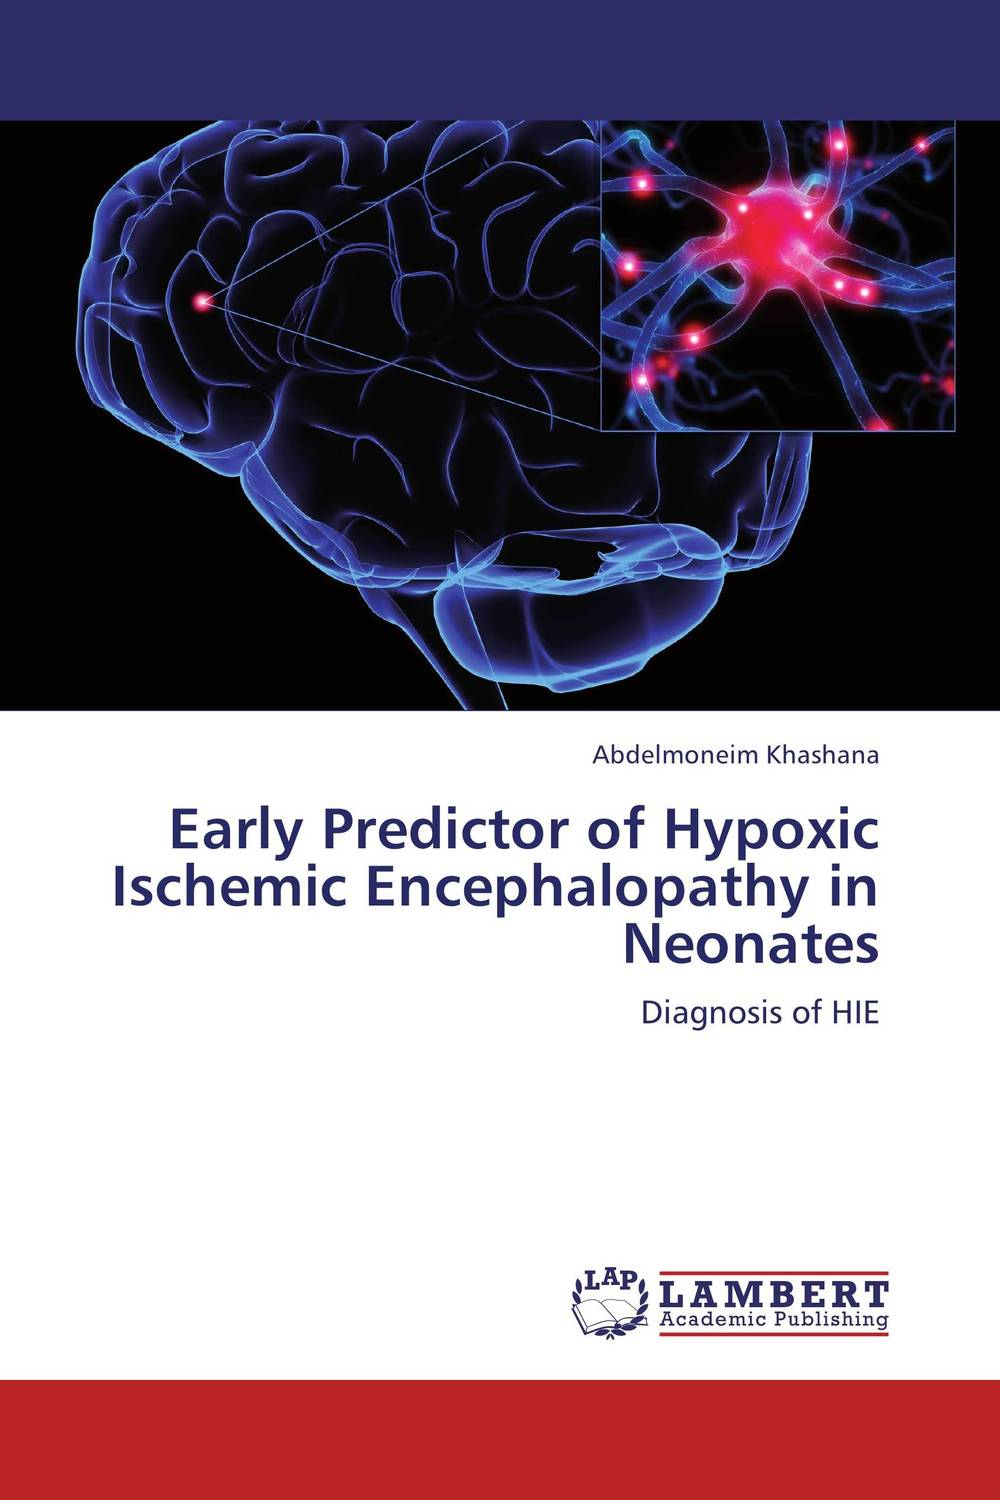 Early Predictor of Hypoxic Ischemic Encephalopathy in Neonates adenosine's role in controlling cmro2 following hypoxia ischemia